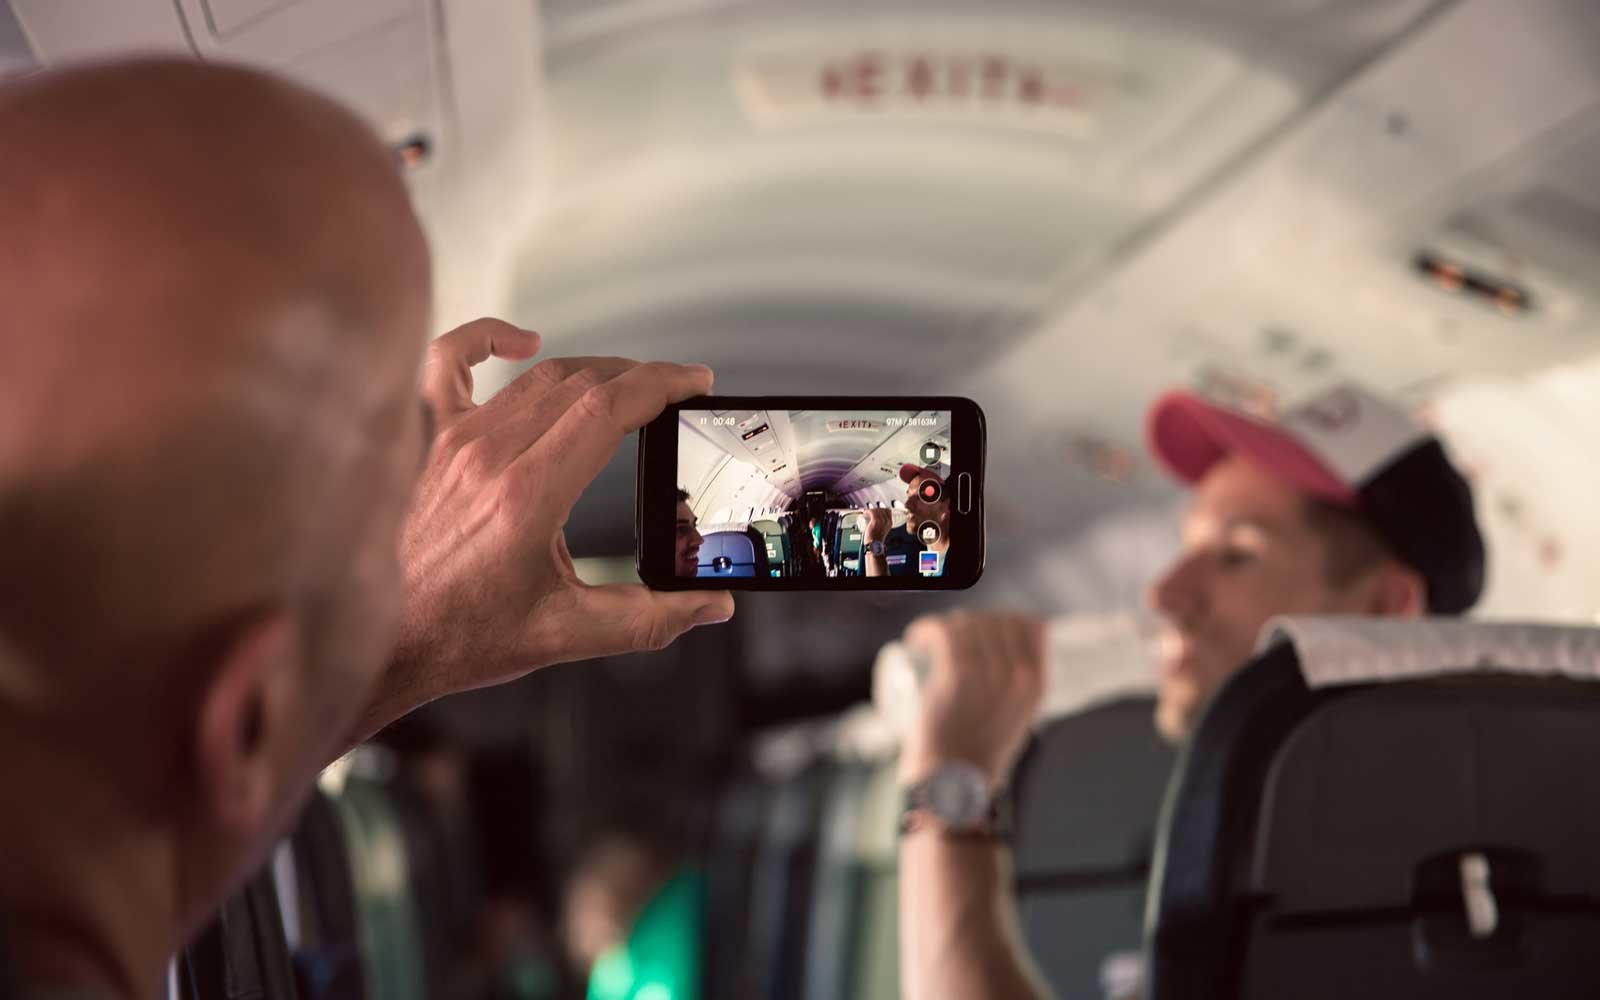 Friends taking pictures on the plane